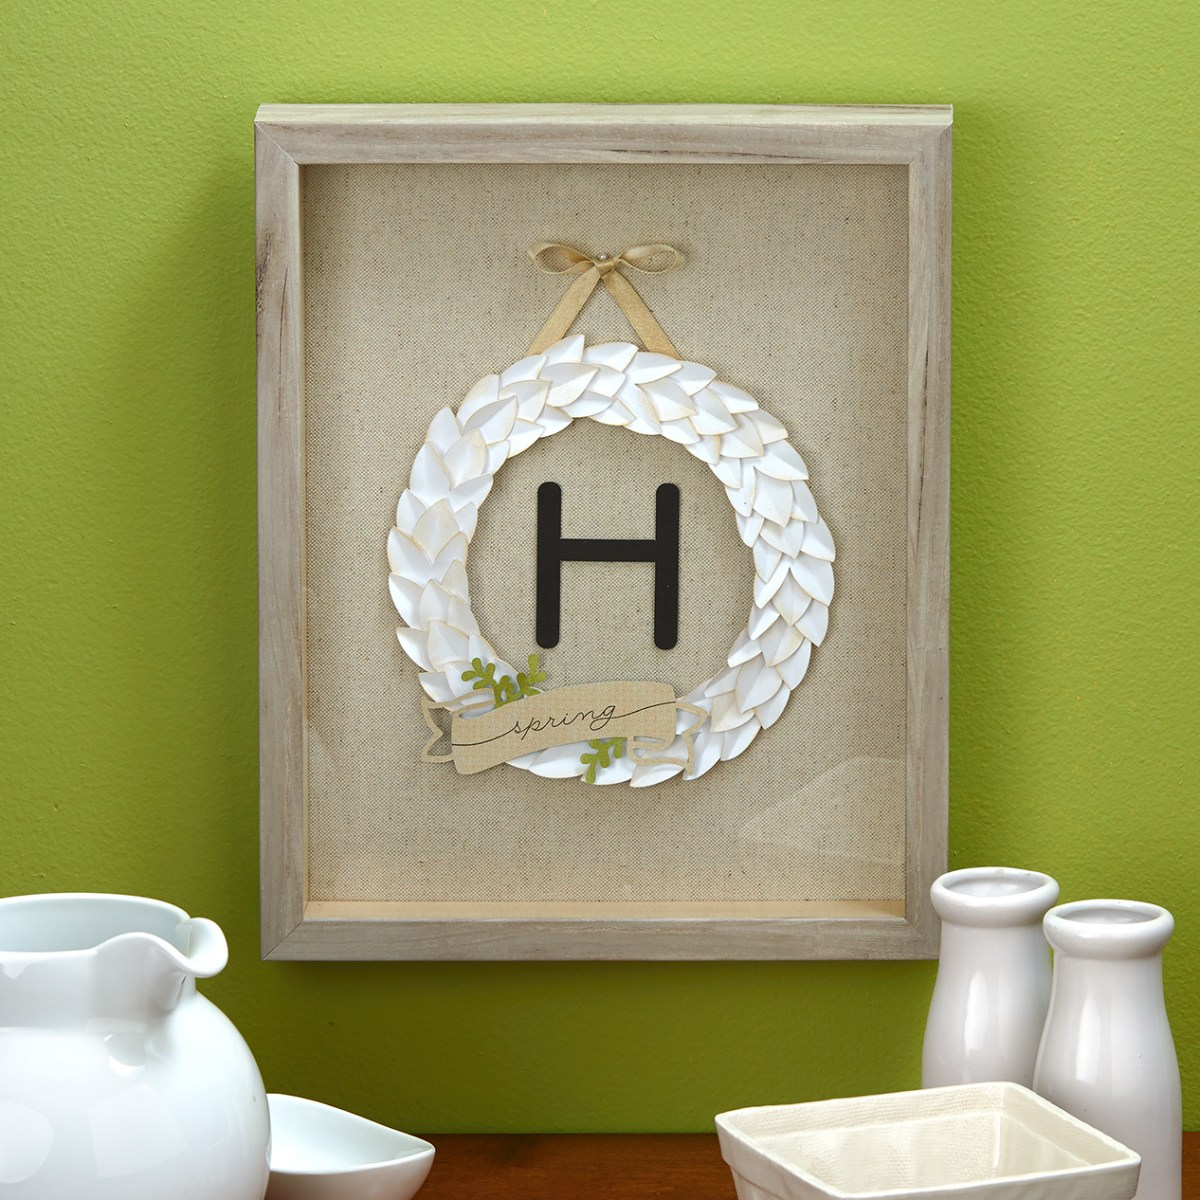 Framed Monogram Wreath #ctmh #closetomyheart #monogram #wreath #neutral #diy #decor #Cricut #flowermarket #flower #rawwood #distressed #weathered #shabbychic #modernantique #antiqued